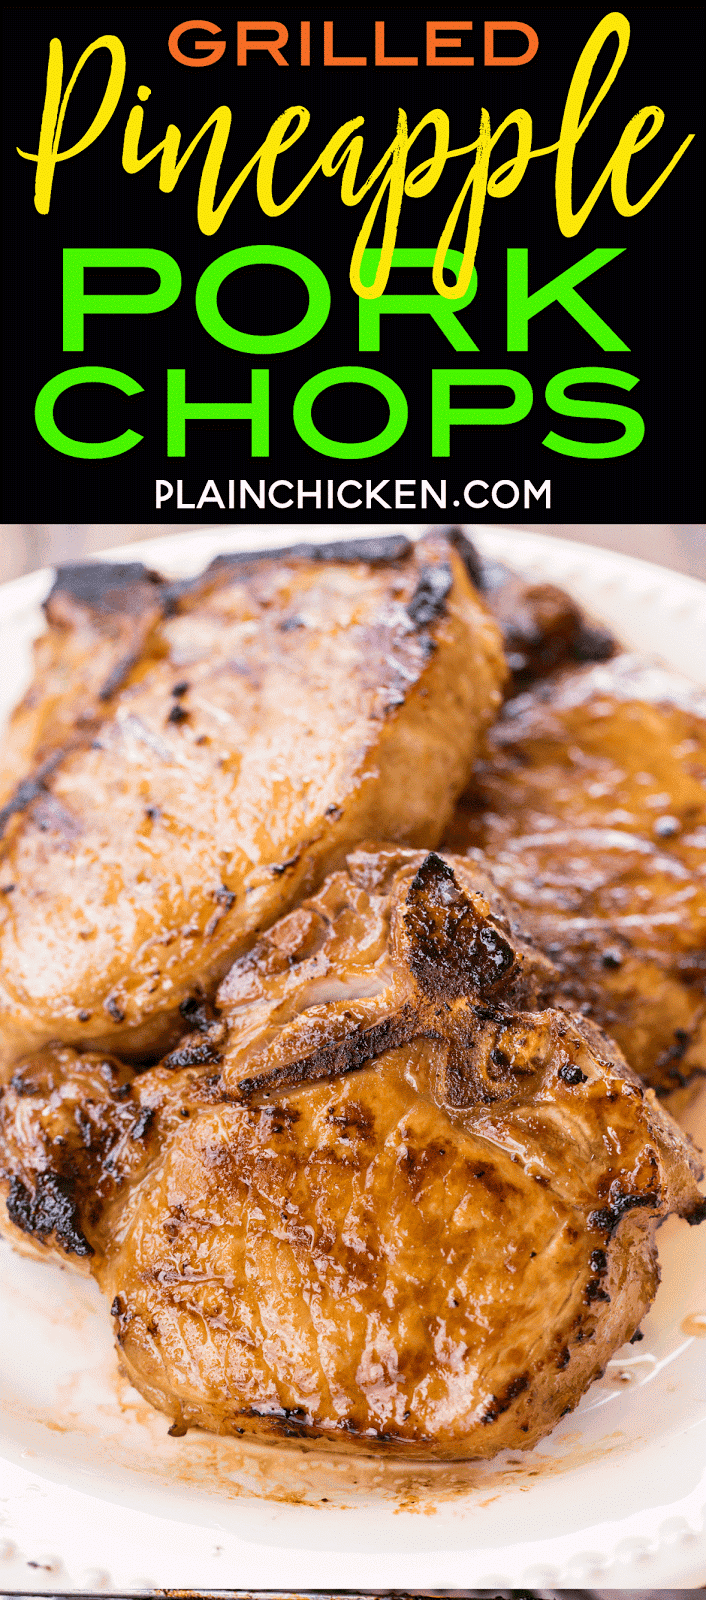 Grilled Pineapple Pork Chops - seriously delicious! Only 5 ingredients! Tastes better than any restaurant. Italian dressing, soy sauce, brown sugar, pineapple juice and pork chops. SO tender and juicy. Such a quick and easy pork chop recipe!